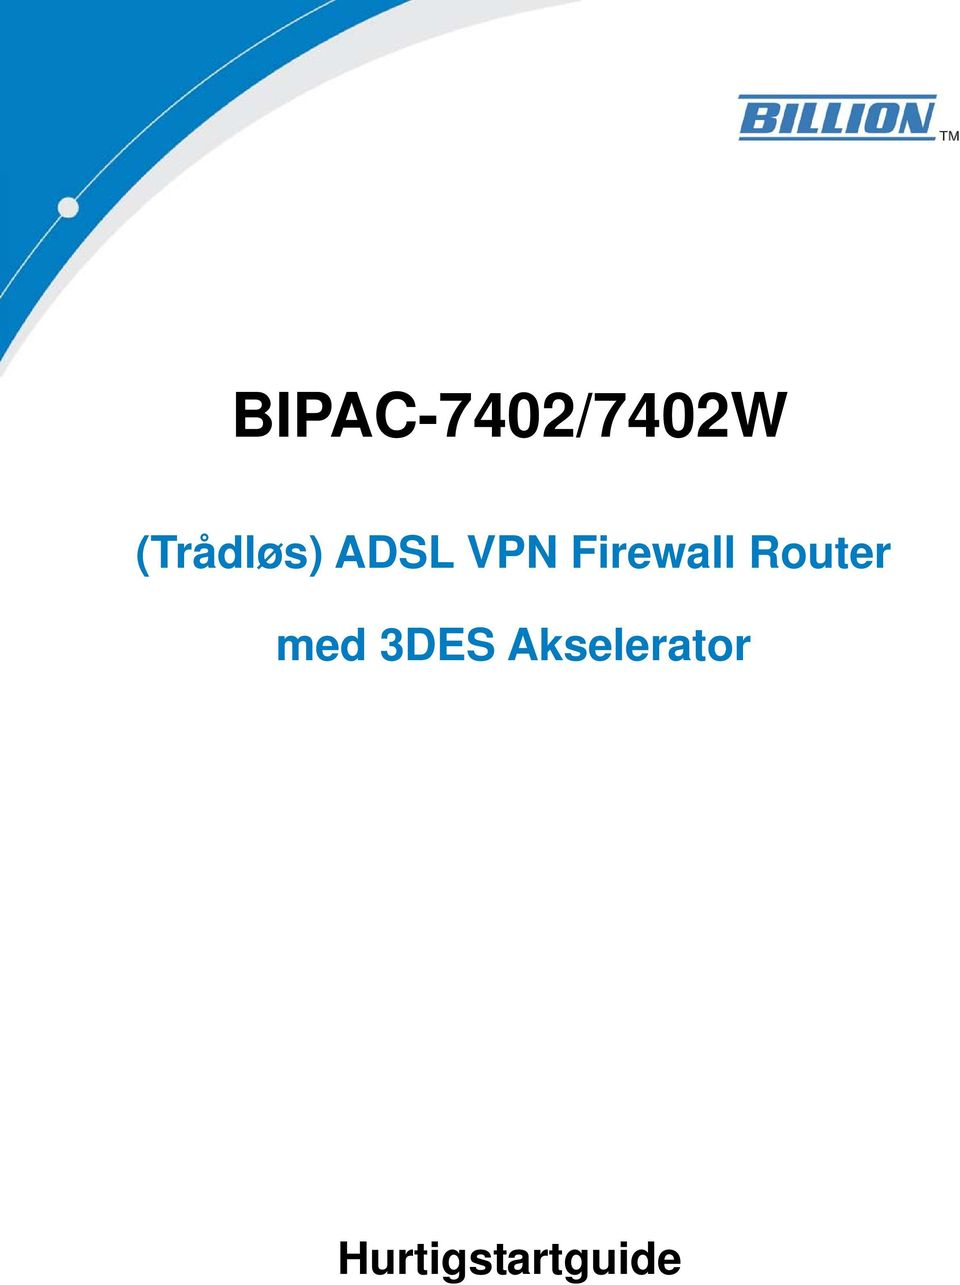 Firewall Router med